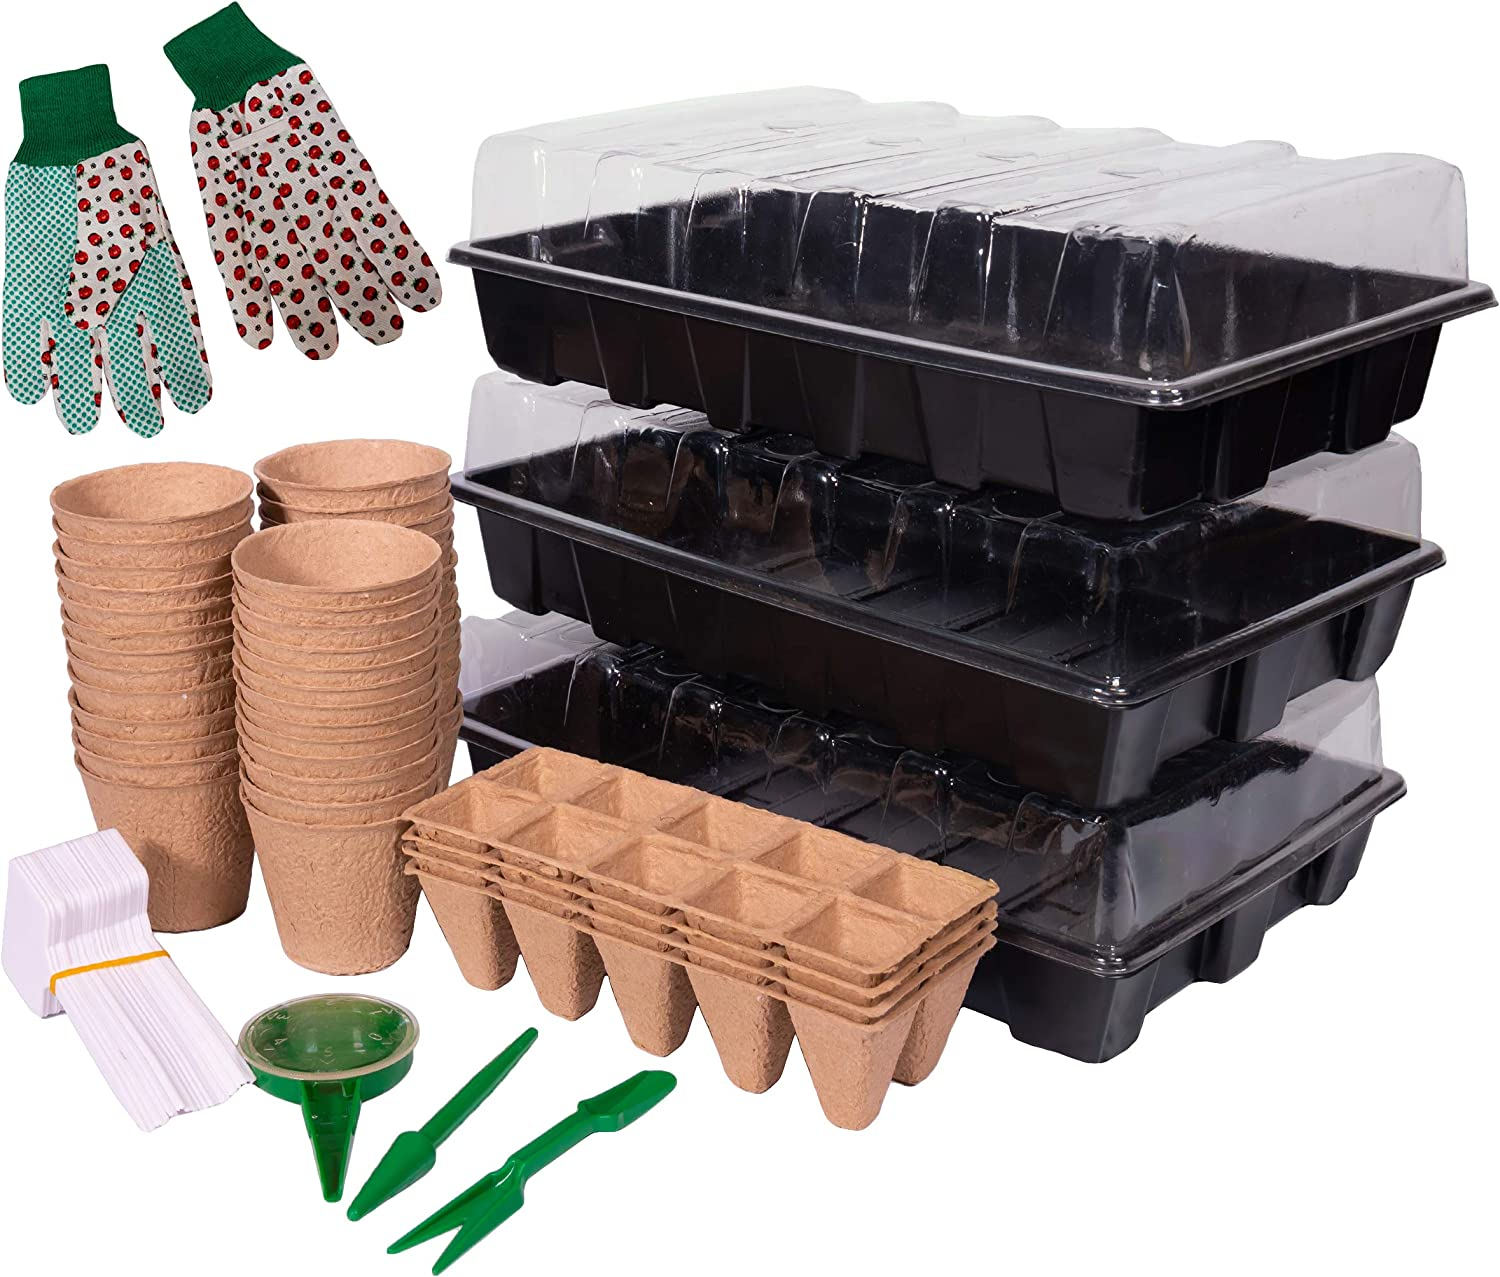 Biodegradable Seed Starter Kit - Seed Starter Trays with Humidity Dome and Base | Germination Trays for Vegetable and Flower Indoor / Outdoor Gardening